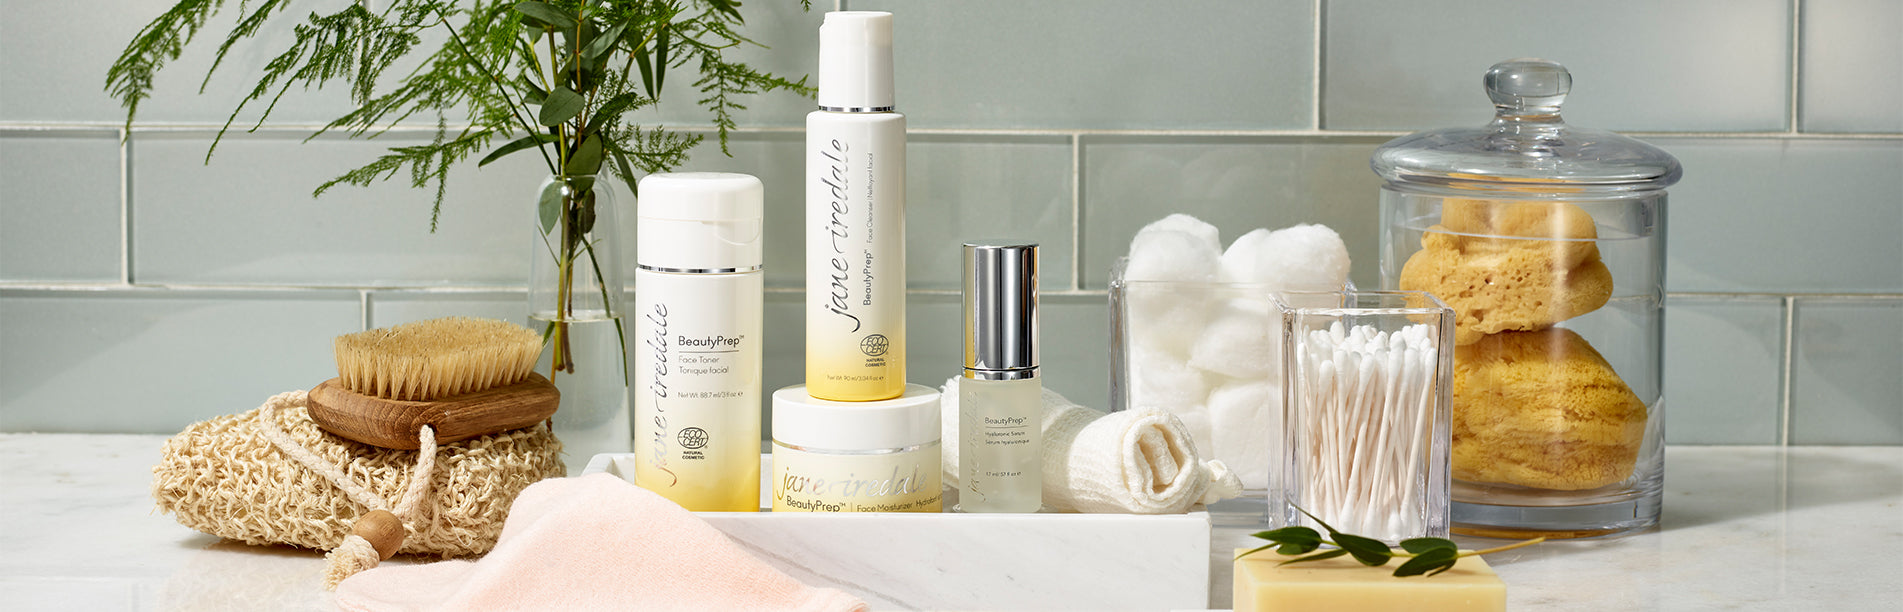 beautyprep skincare system in a bathroom